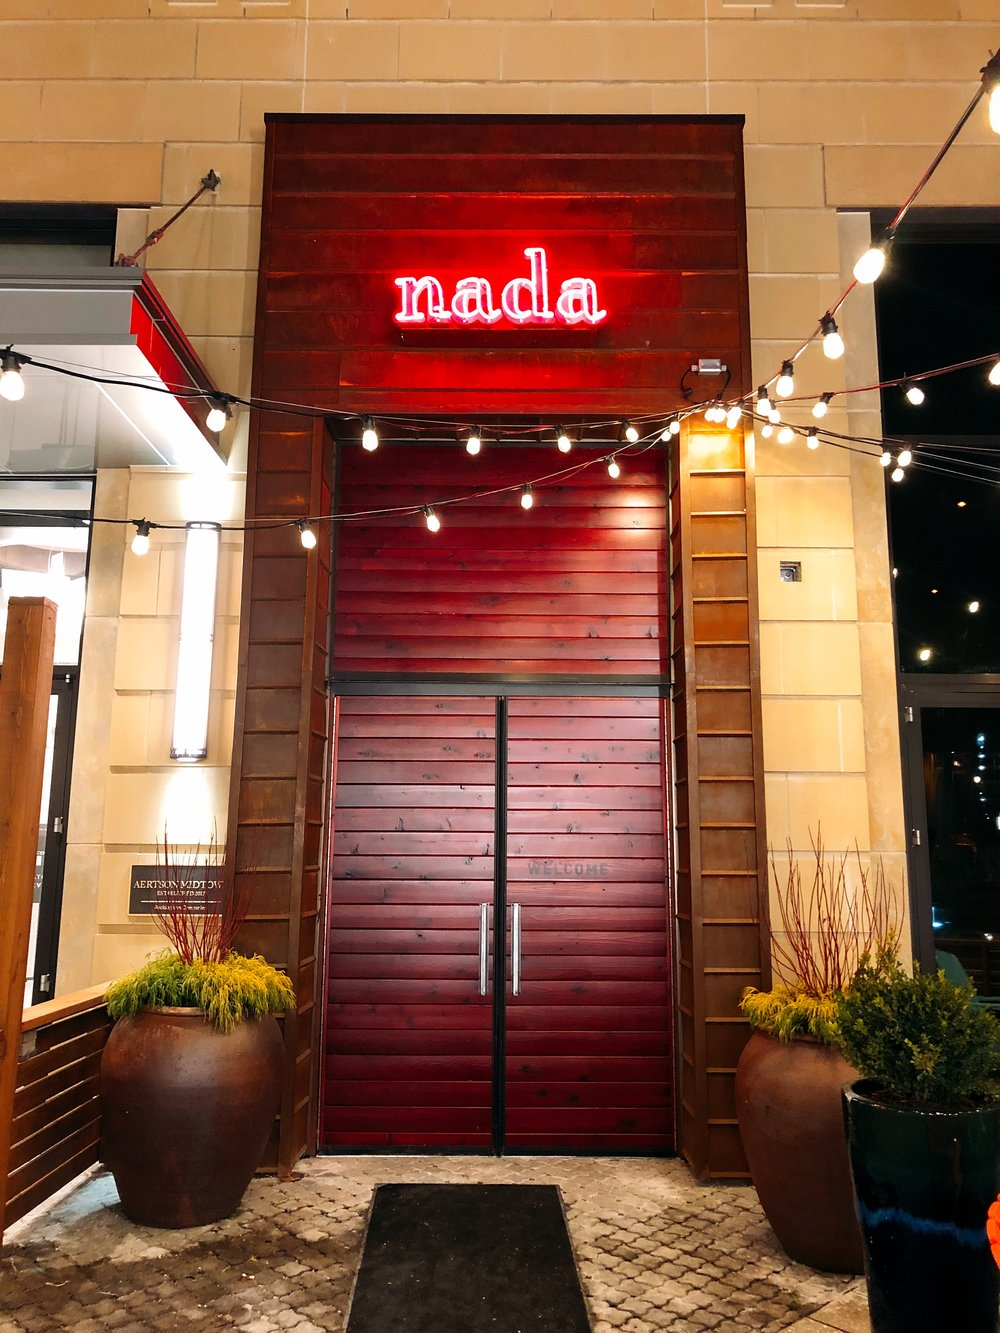 nada Opened These Doors For Business On January 15